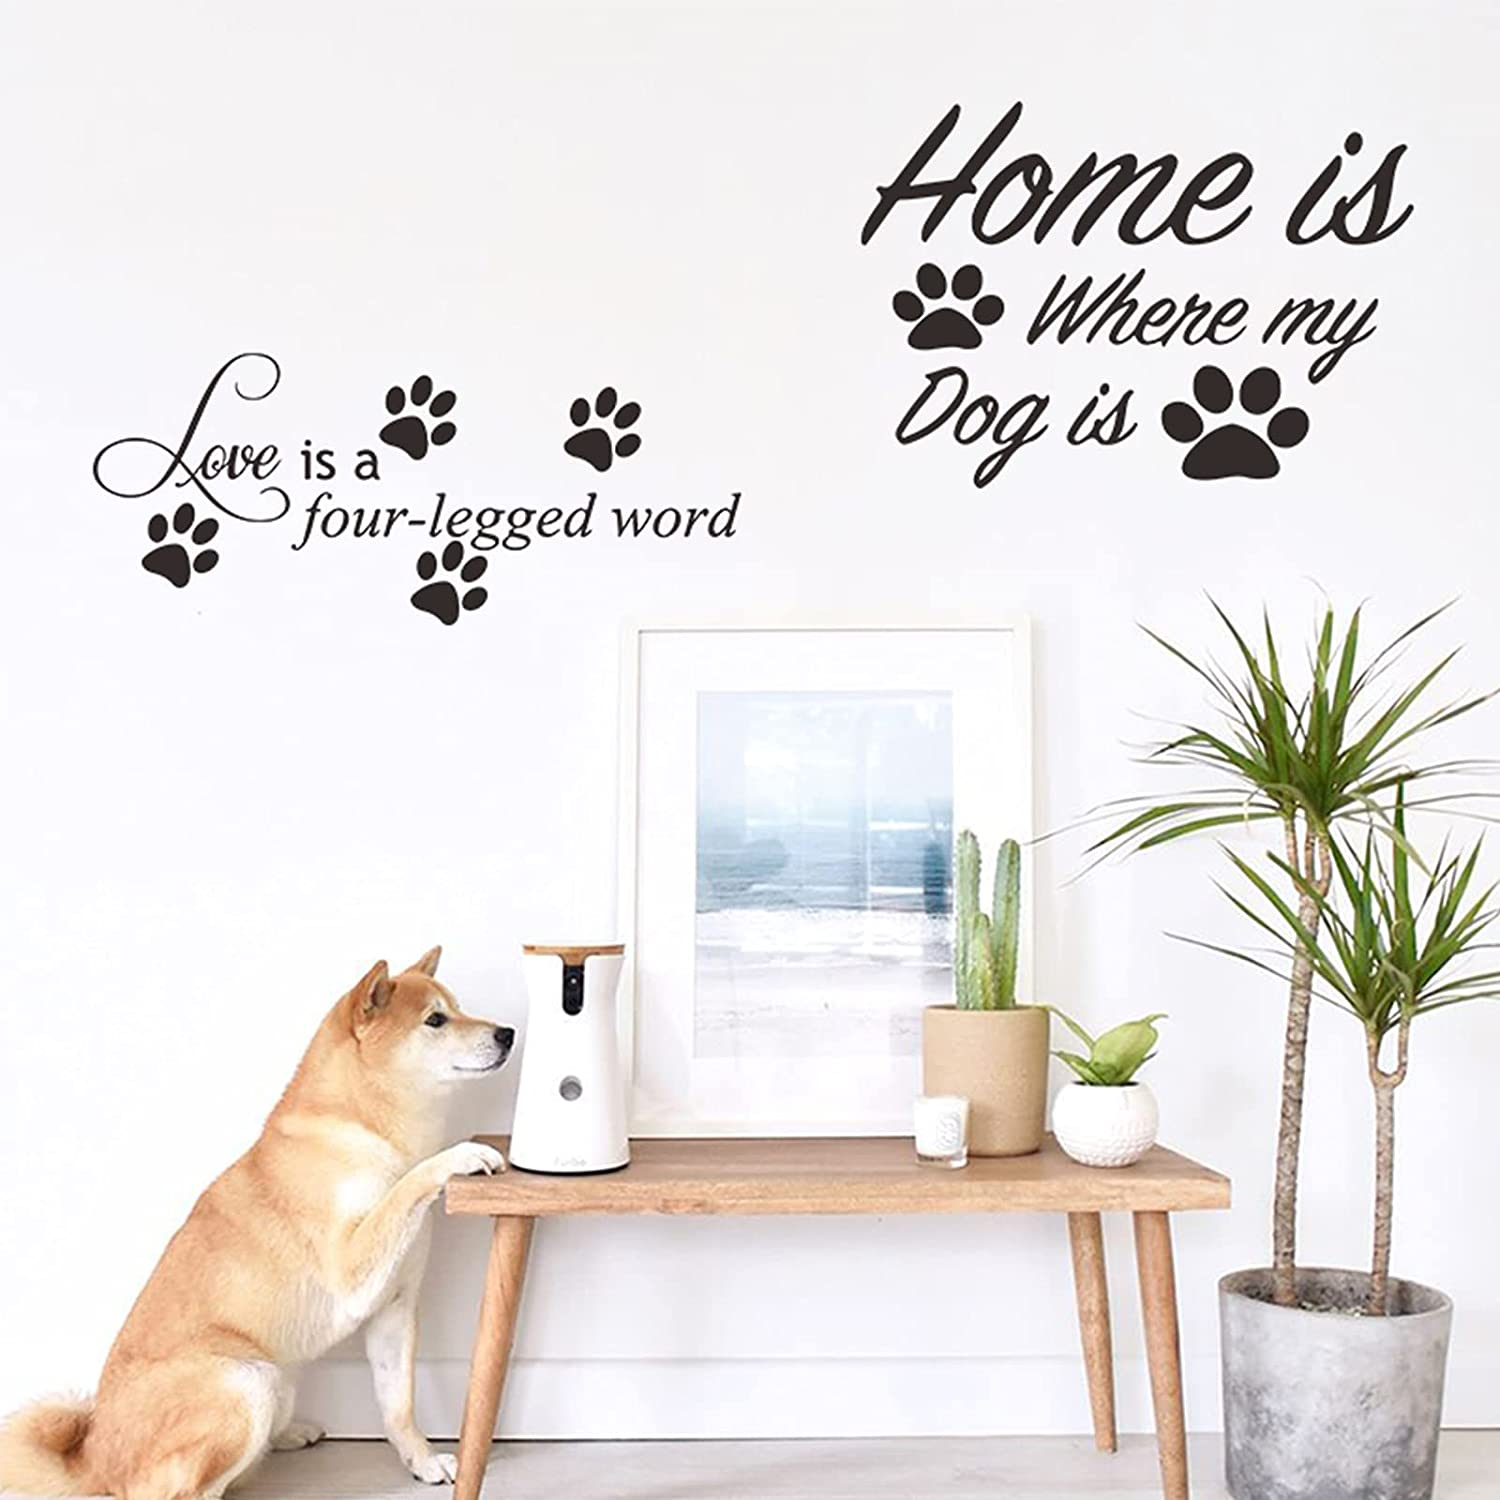 Dog Decor Stickers, Wall Stickers for Dogs Quotes Word Decals of Love is a Four Legged and Home is Where My Dog is for Dog Wall Decor.(2 Sheets)